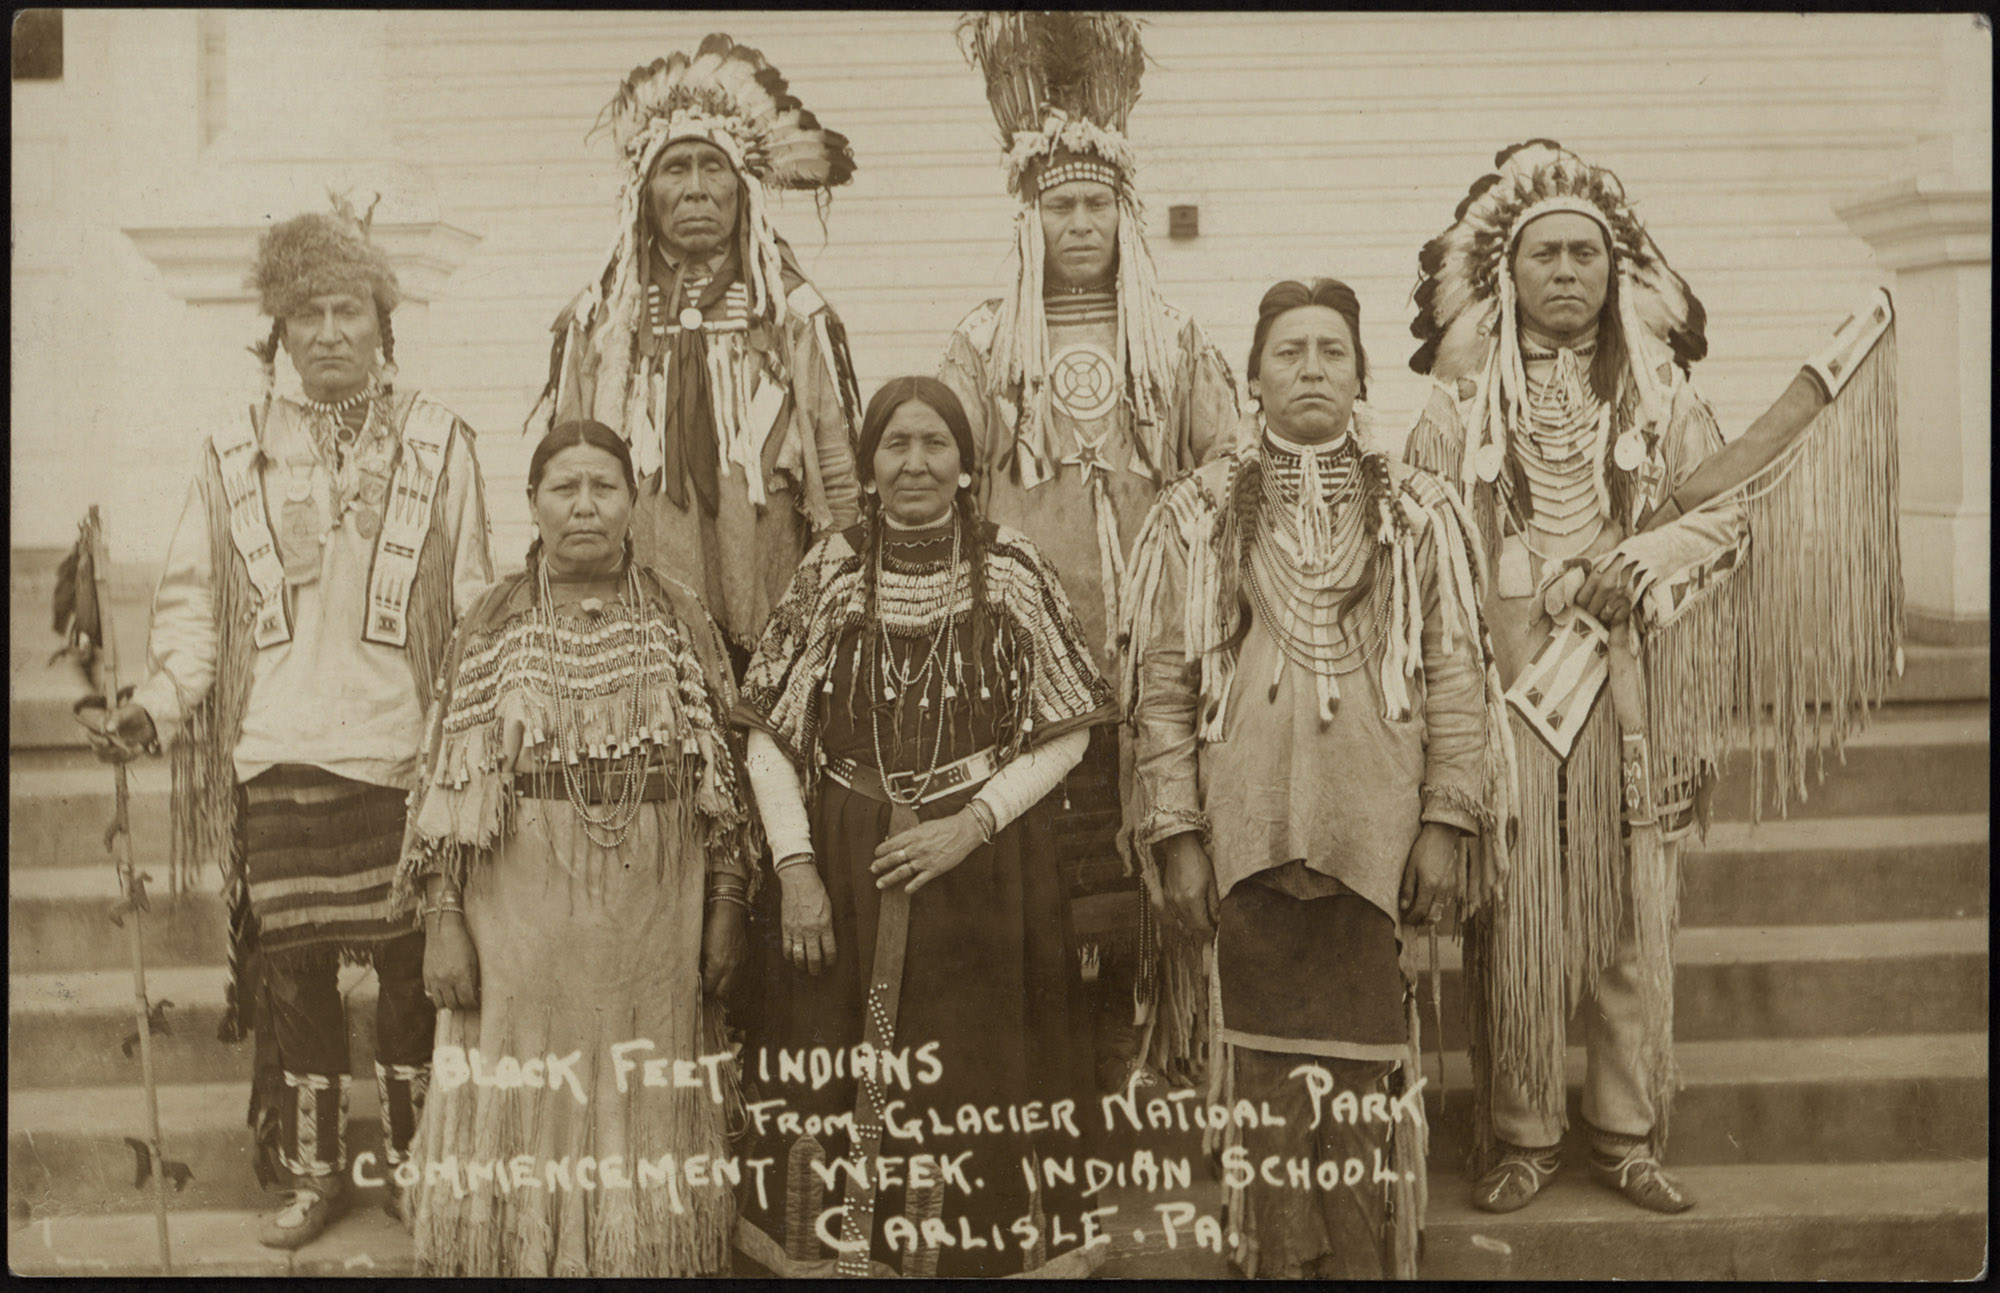 Blackfeet Indians at Commencement Week, 1910